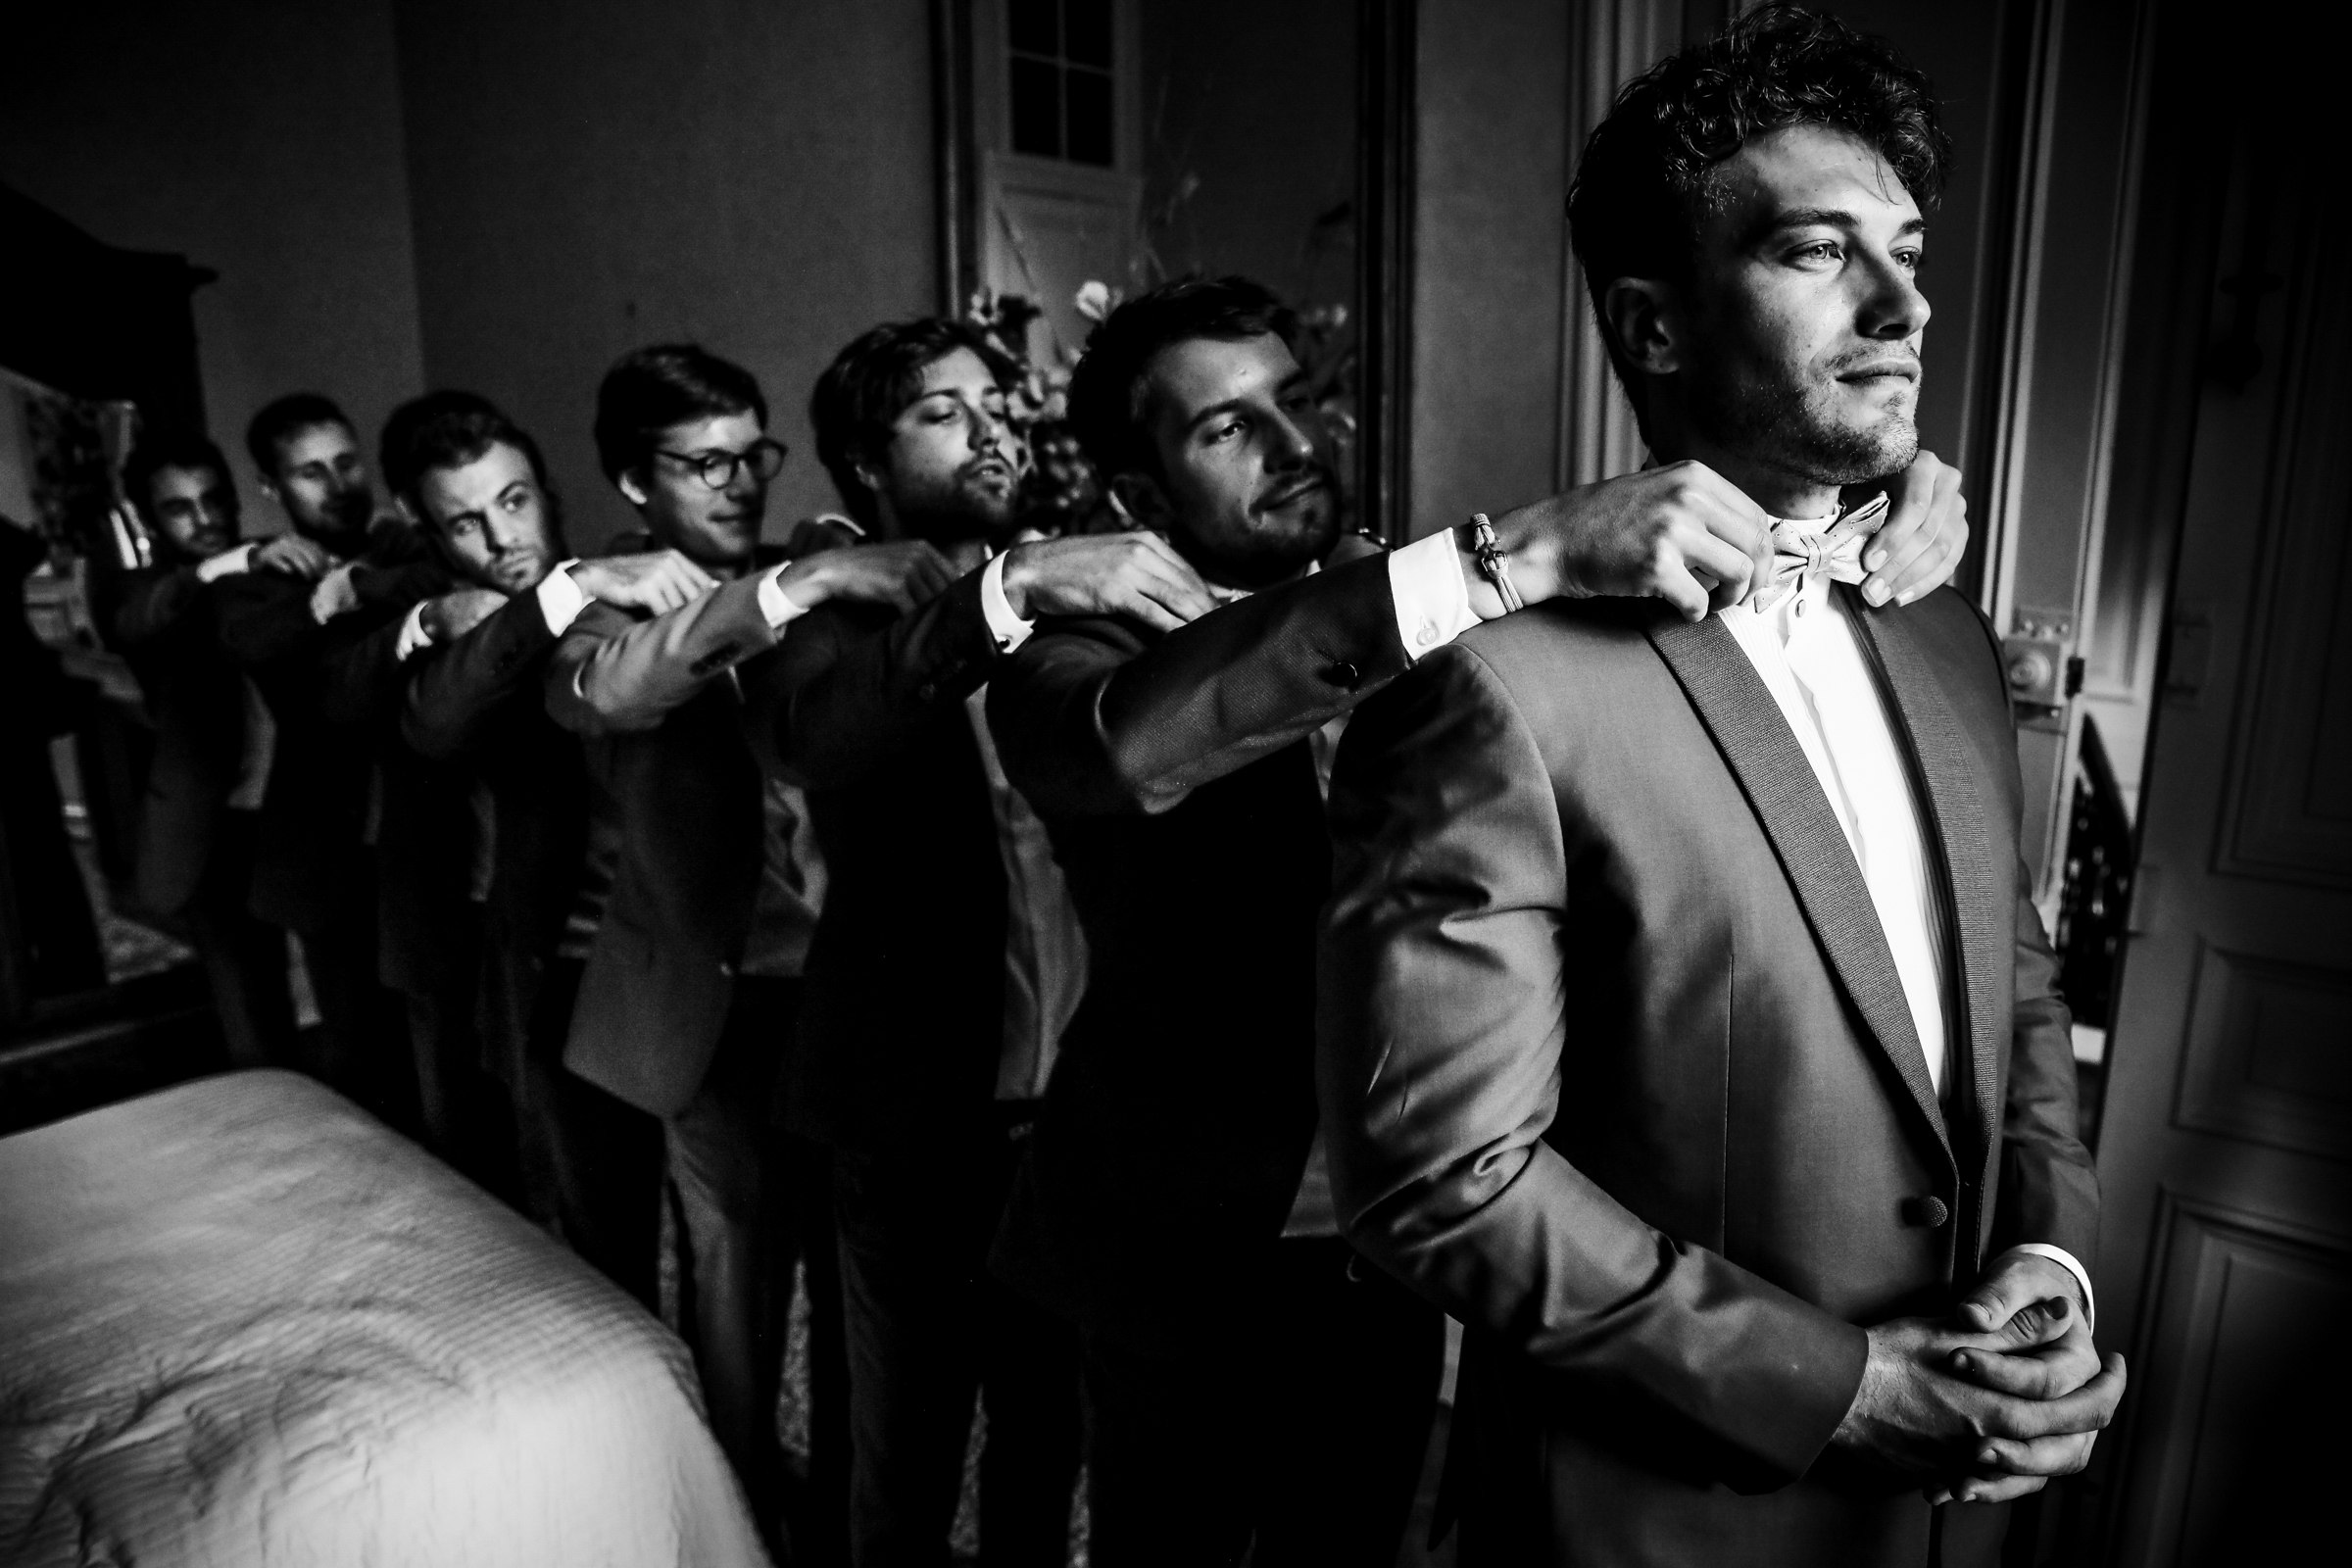 groomsmen-in-a-bowtie-line-julien-laurent-georges